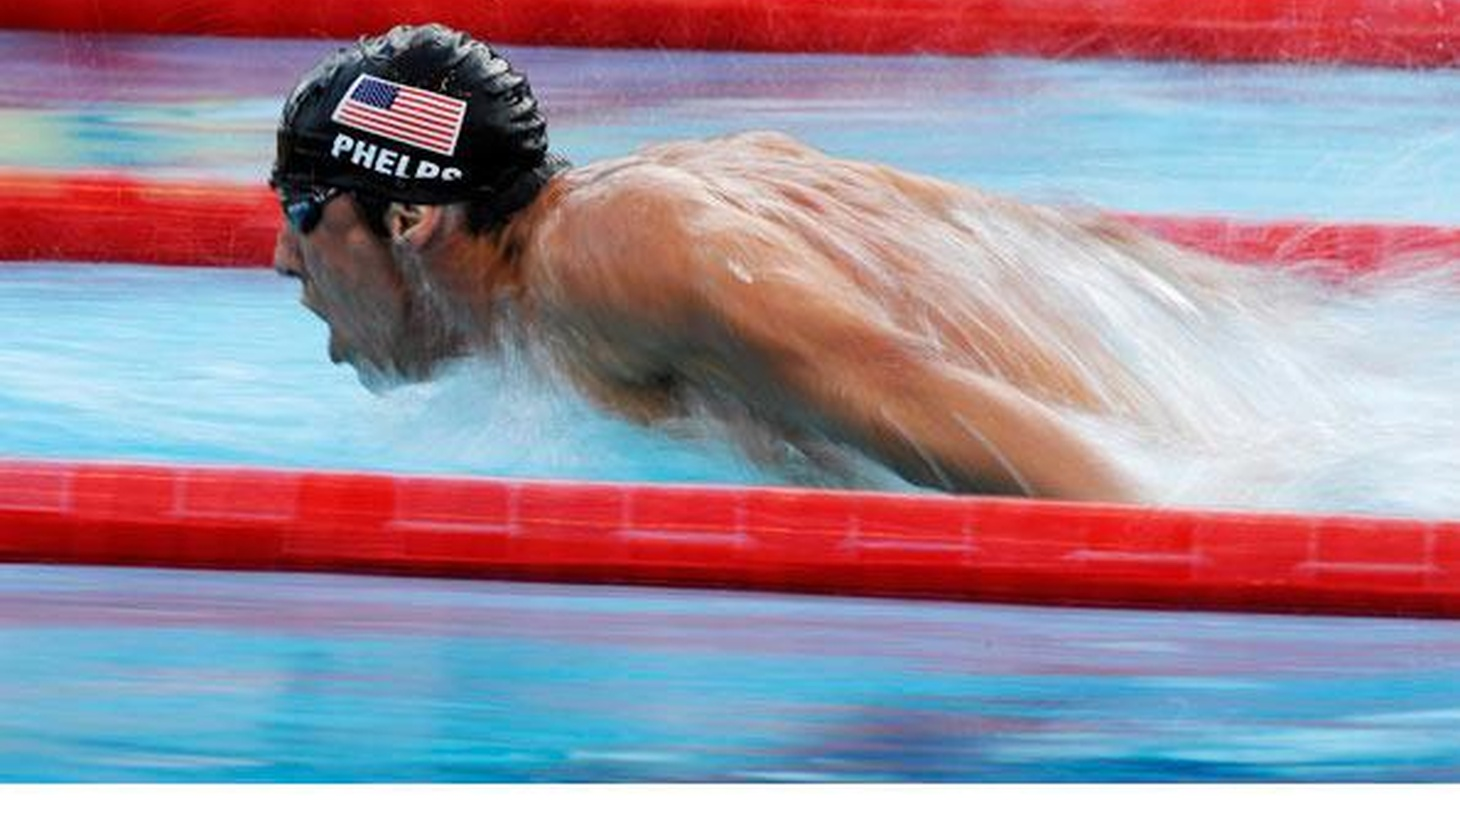 One of Olympic swimming's all-time greats Janet Evans states that her beloved sport is in grave danger of becoming a mockery. Long-time U.S. head swim coach Mark Schubert fears the gravitas of the sport has been threatened to the point of losing its status as the cornerstone of the Olympic Games. Michael Phelps' coach cries out that the history of their sport has been tossed out like rotten garbage...